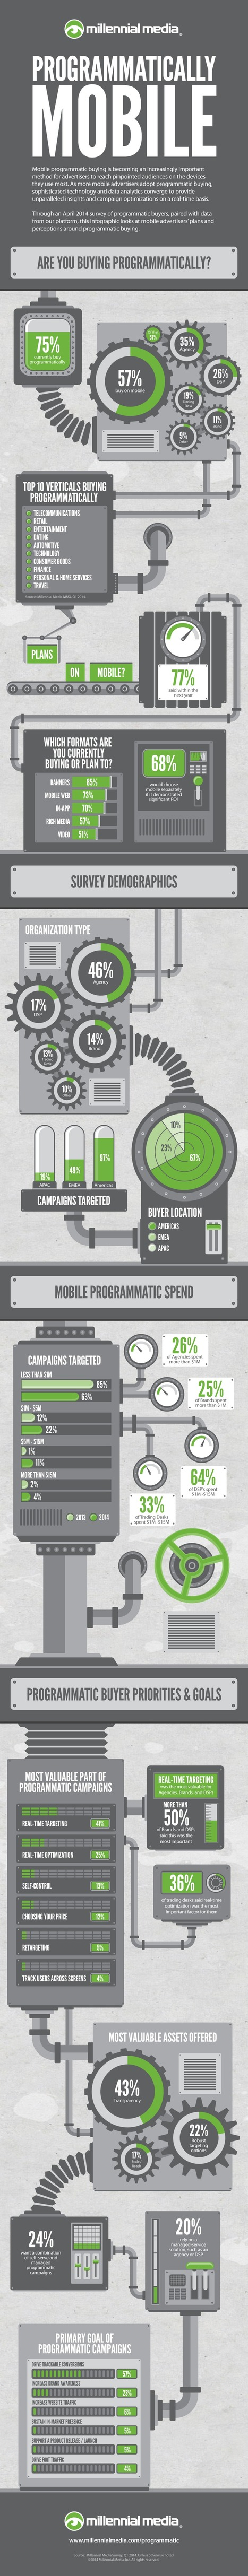 Programmatically Mobile | Millennial Media | #Programmatic And Search Engine #Marketing | Scoop.it